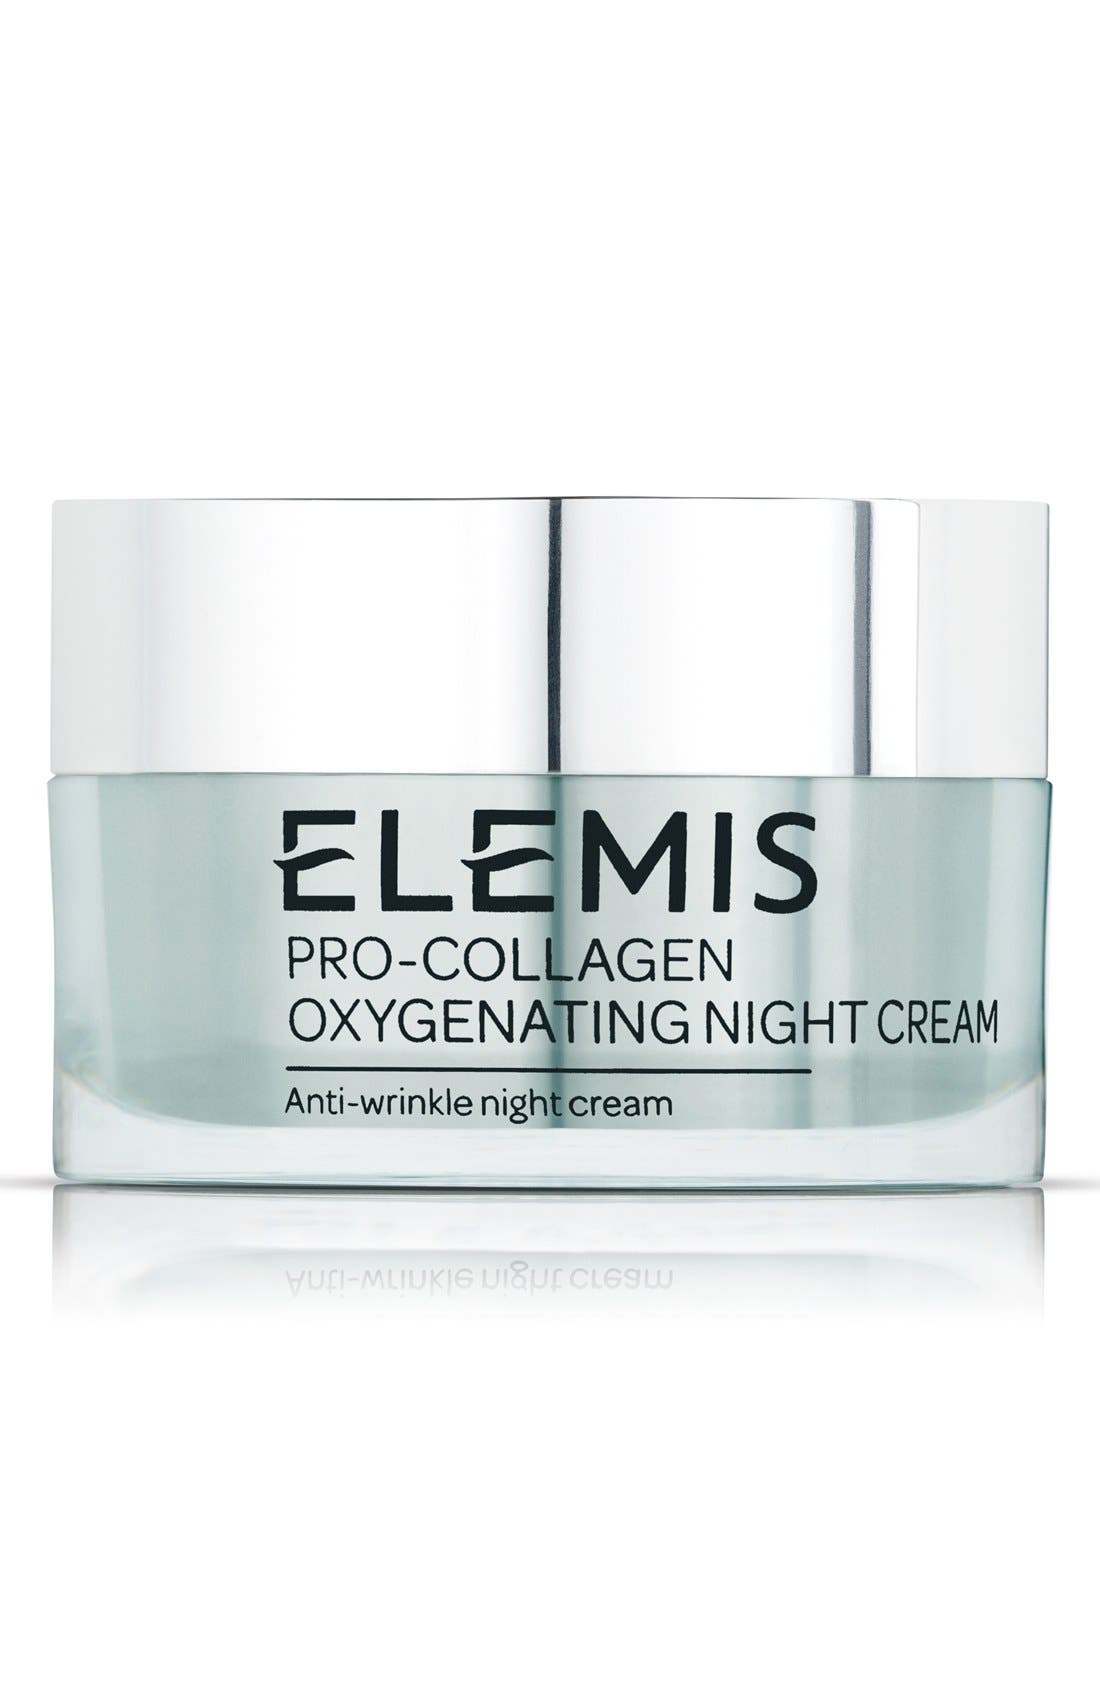 Pro-Collagen Oxygenating Night Cream,                             Main thumbnail 1, color,                             NO COLOR